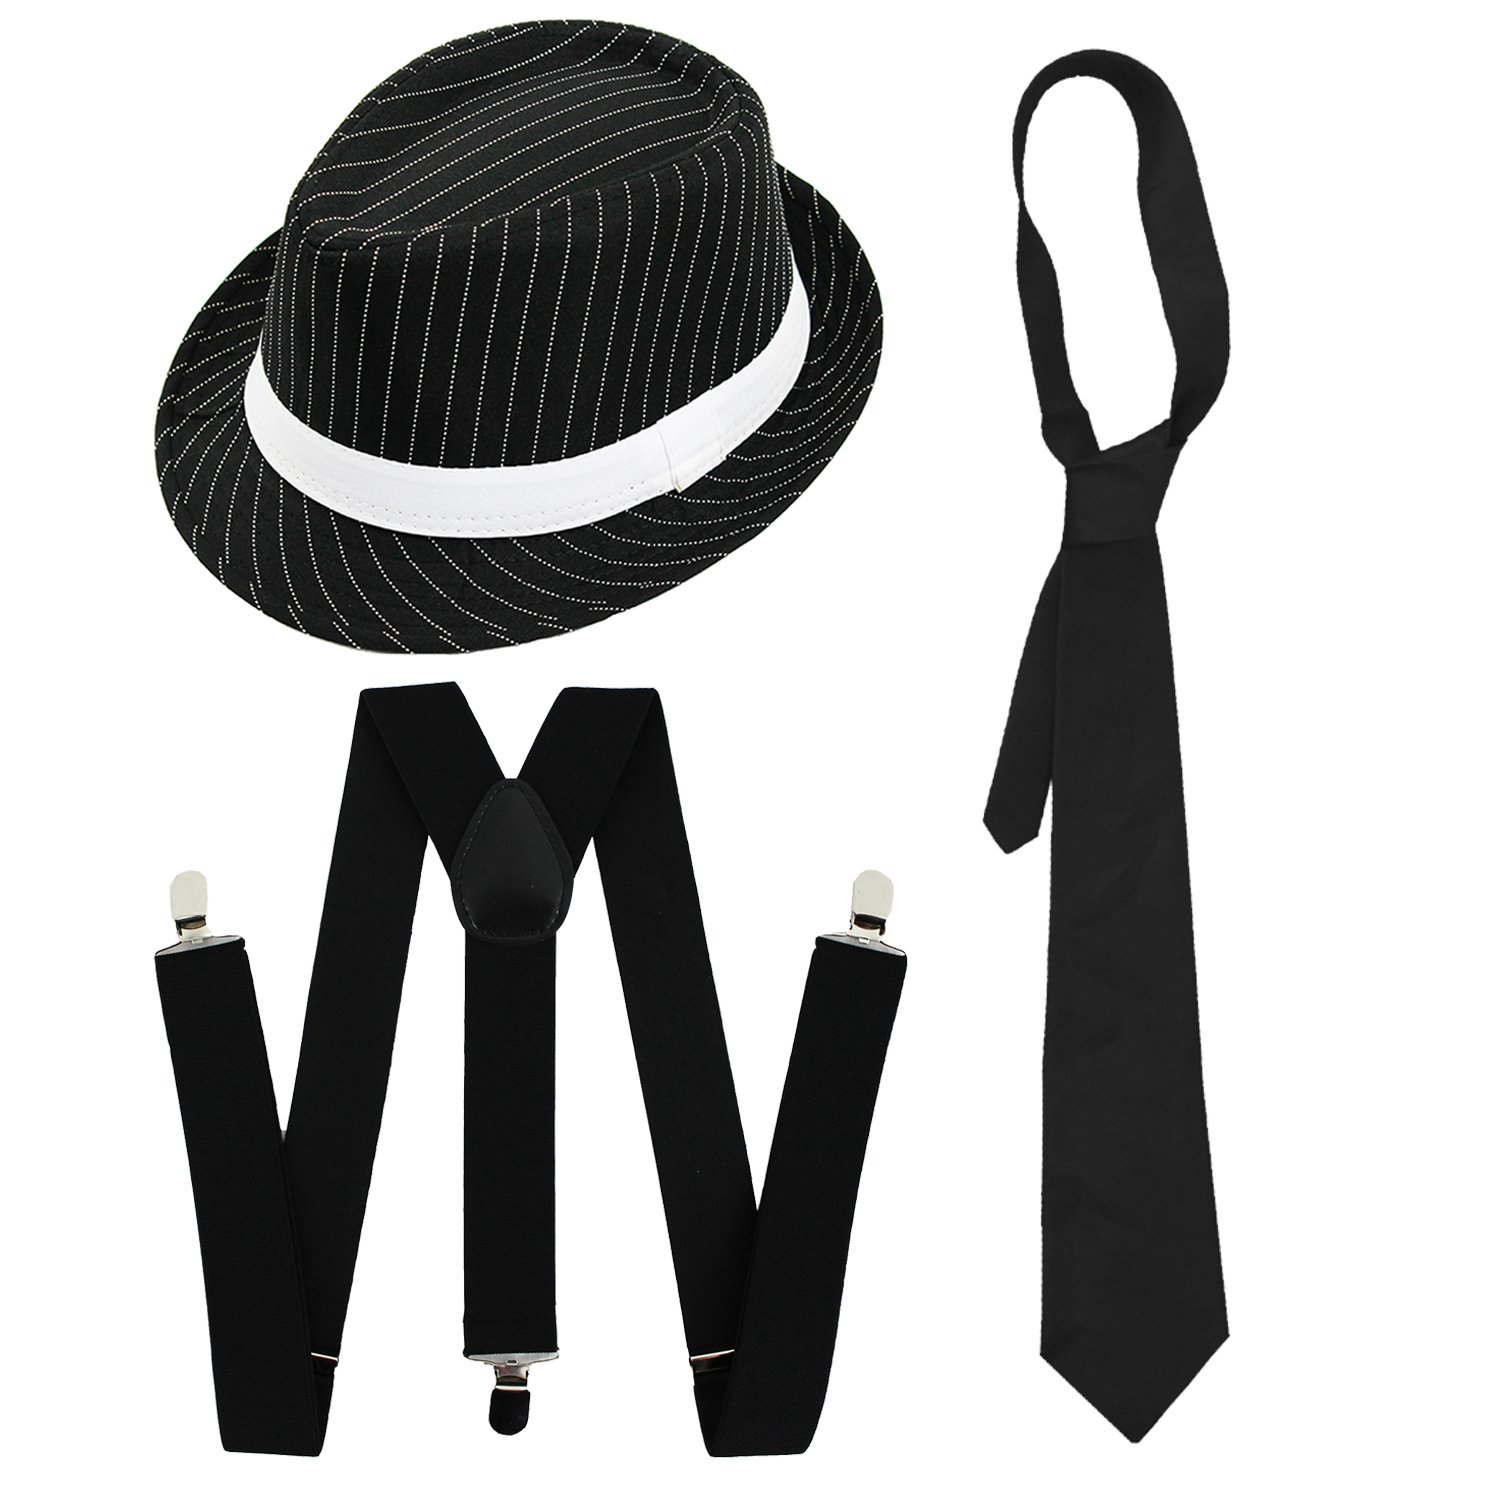 d4366f325 GANGSTER SET FANCY DRESS ACCESSORY COSTUME DELUXE KIT BLACK OR WHITE  PINSTRIPE TRILBY HAT + BLACK BRACES + BLACK TIE MOB GANGSTER MEN AL CAPONE